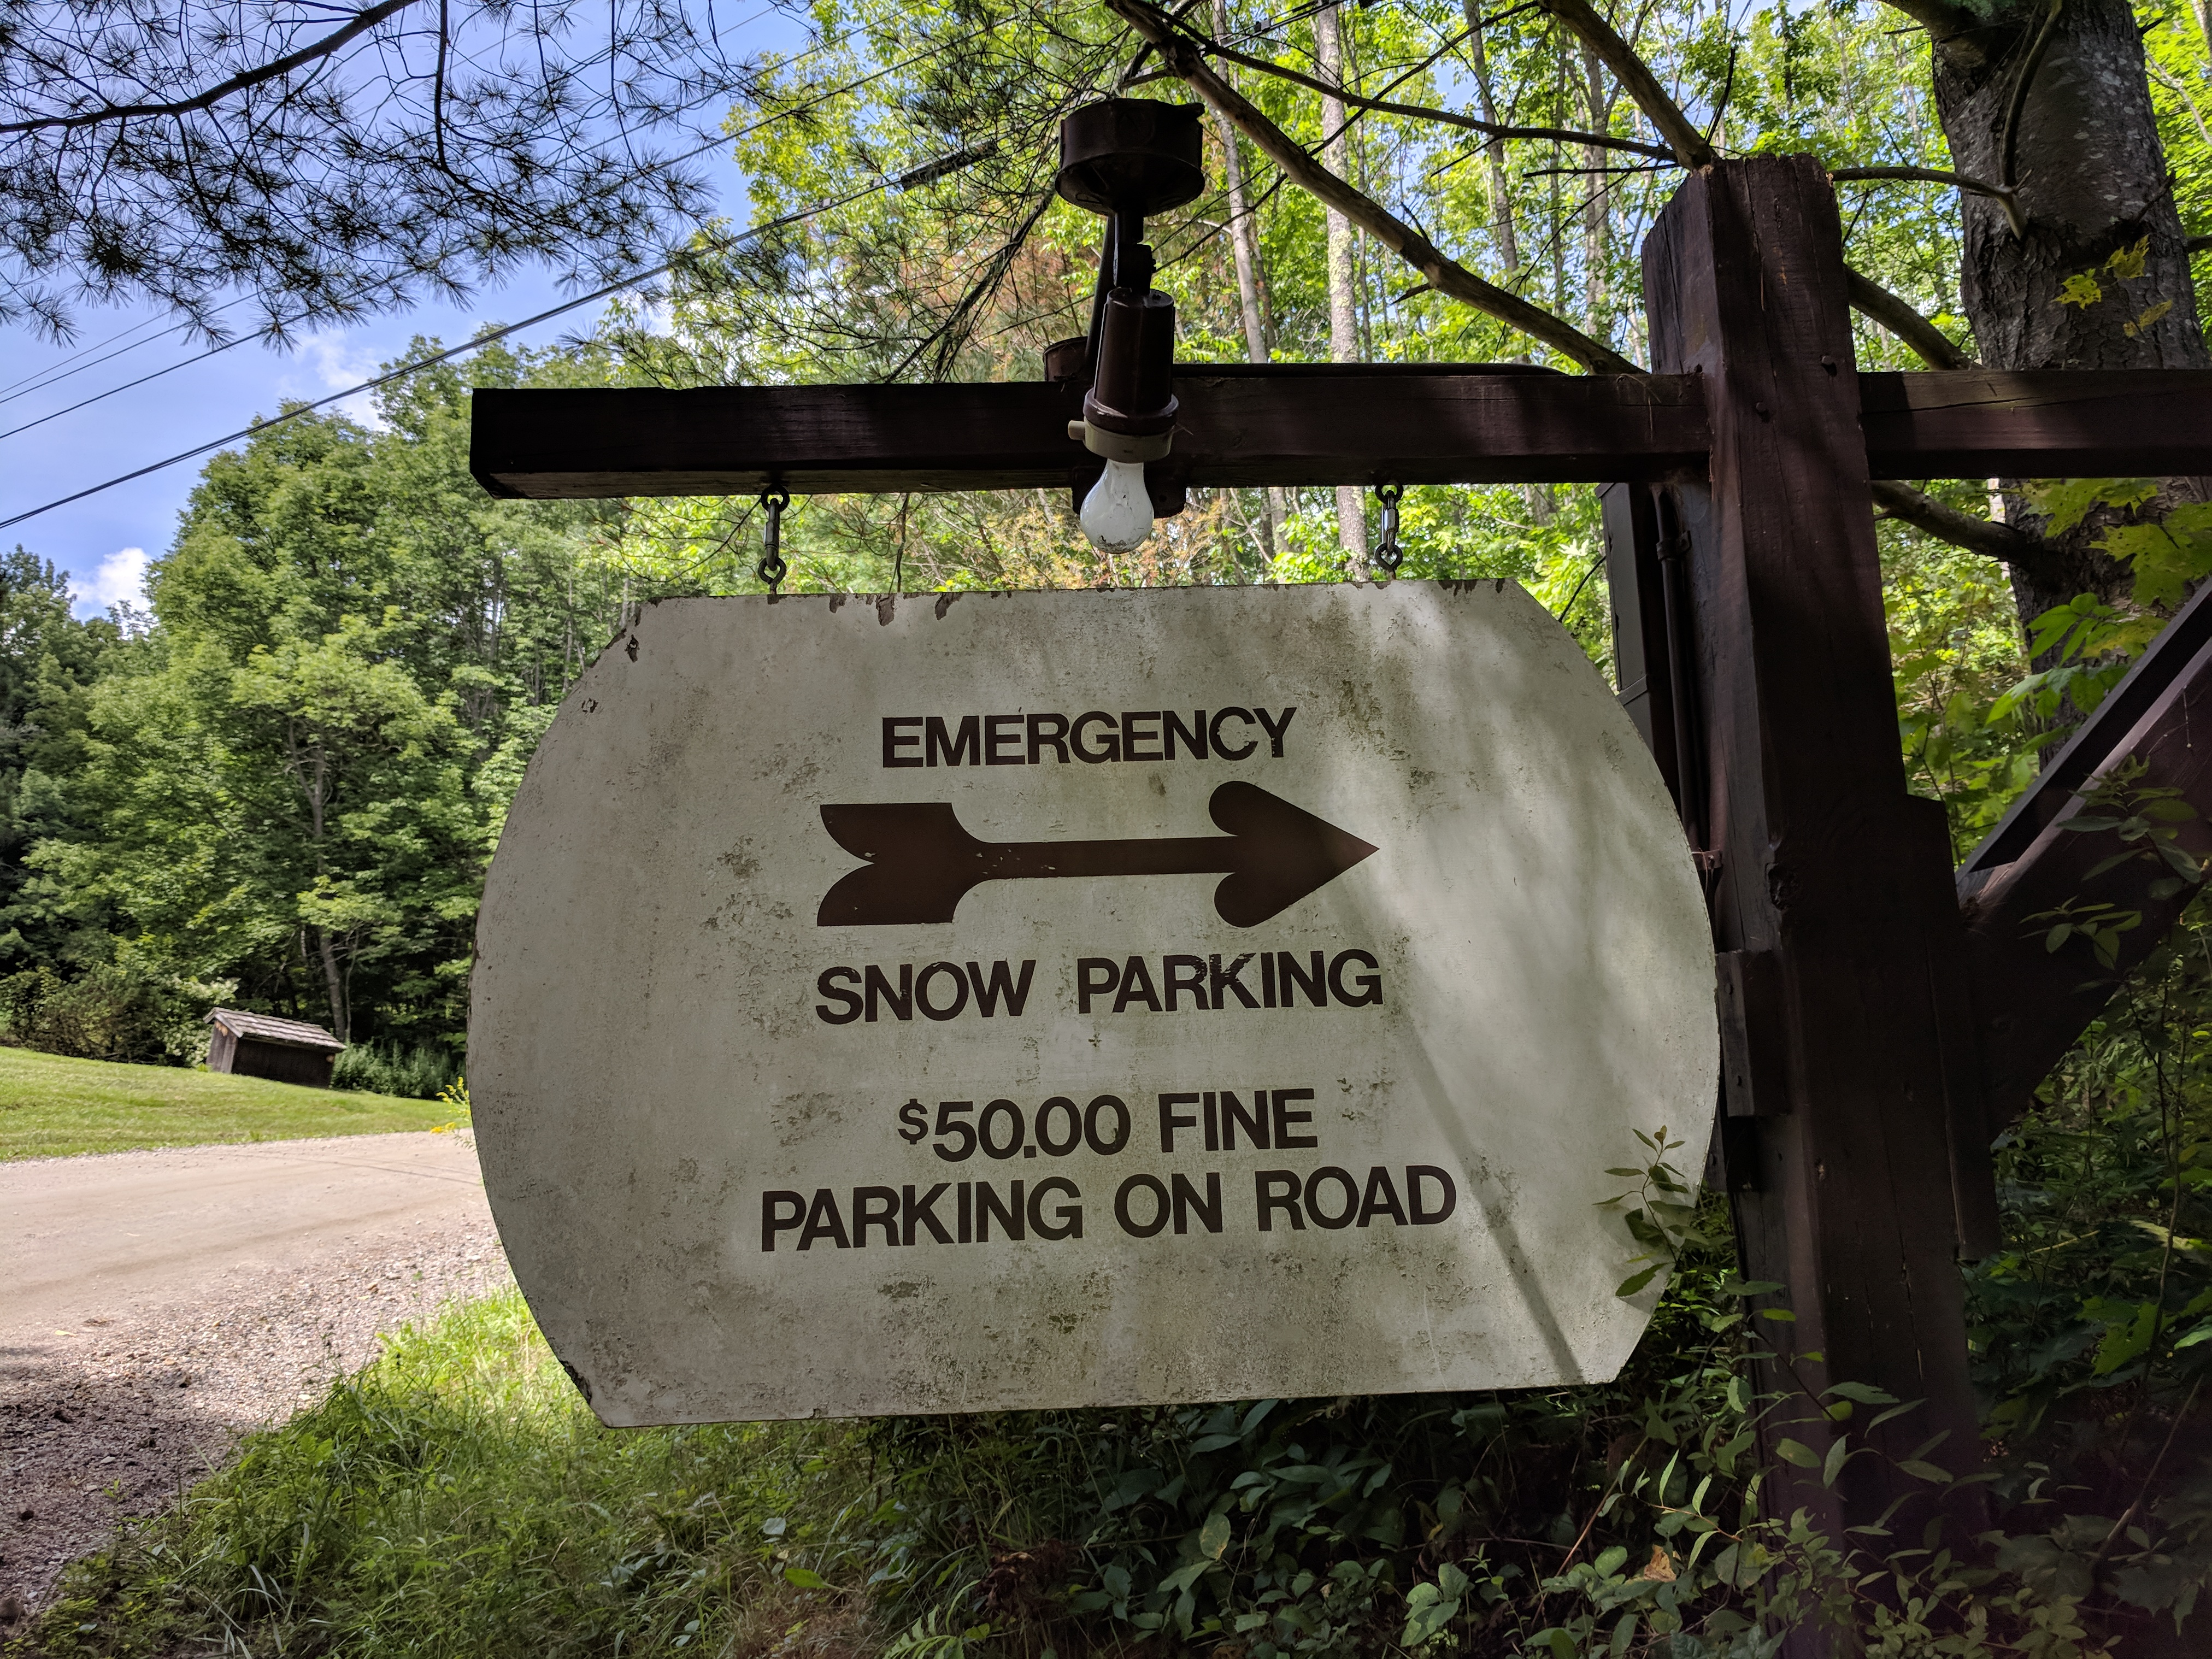 Emergency Snow Parking at Hawk Mountain Pittsfield VT